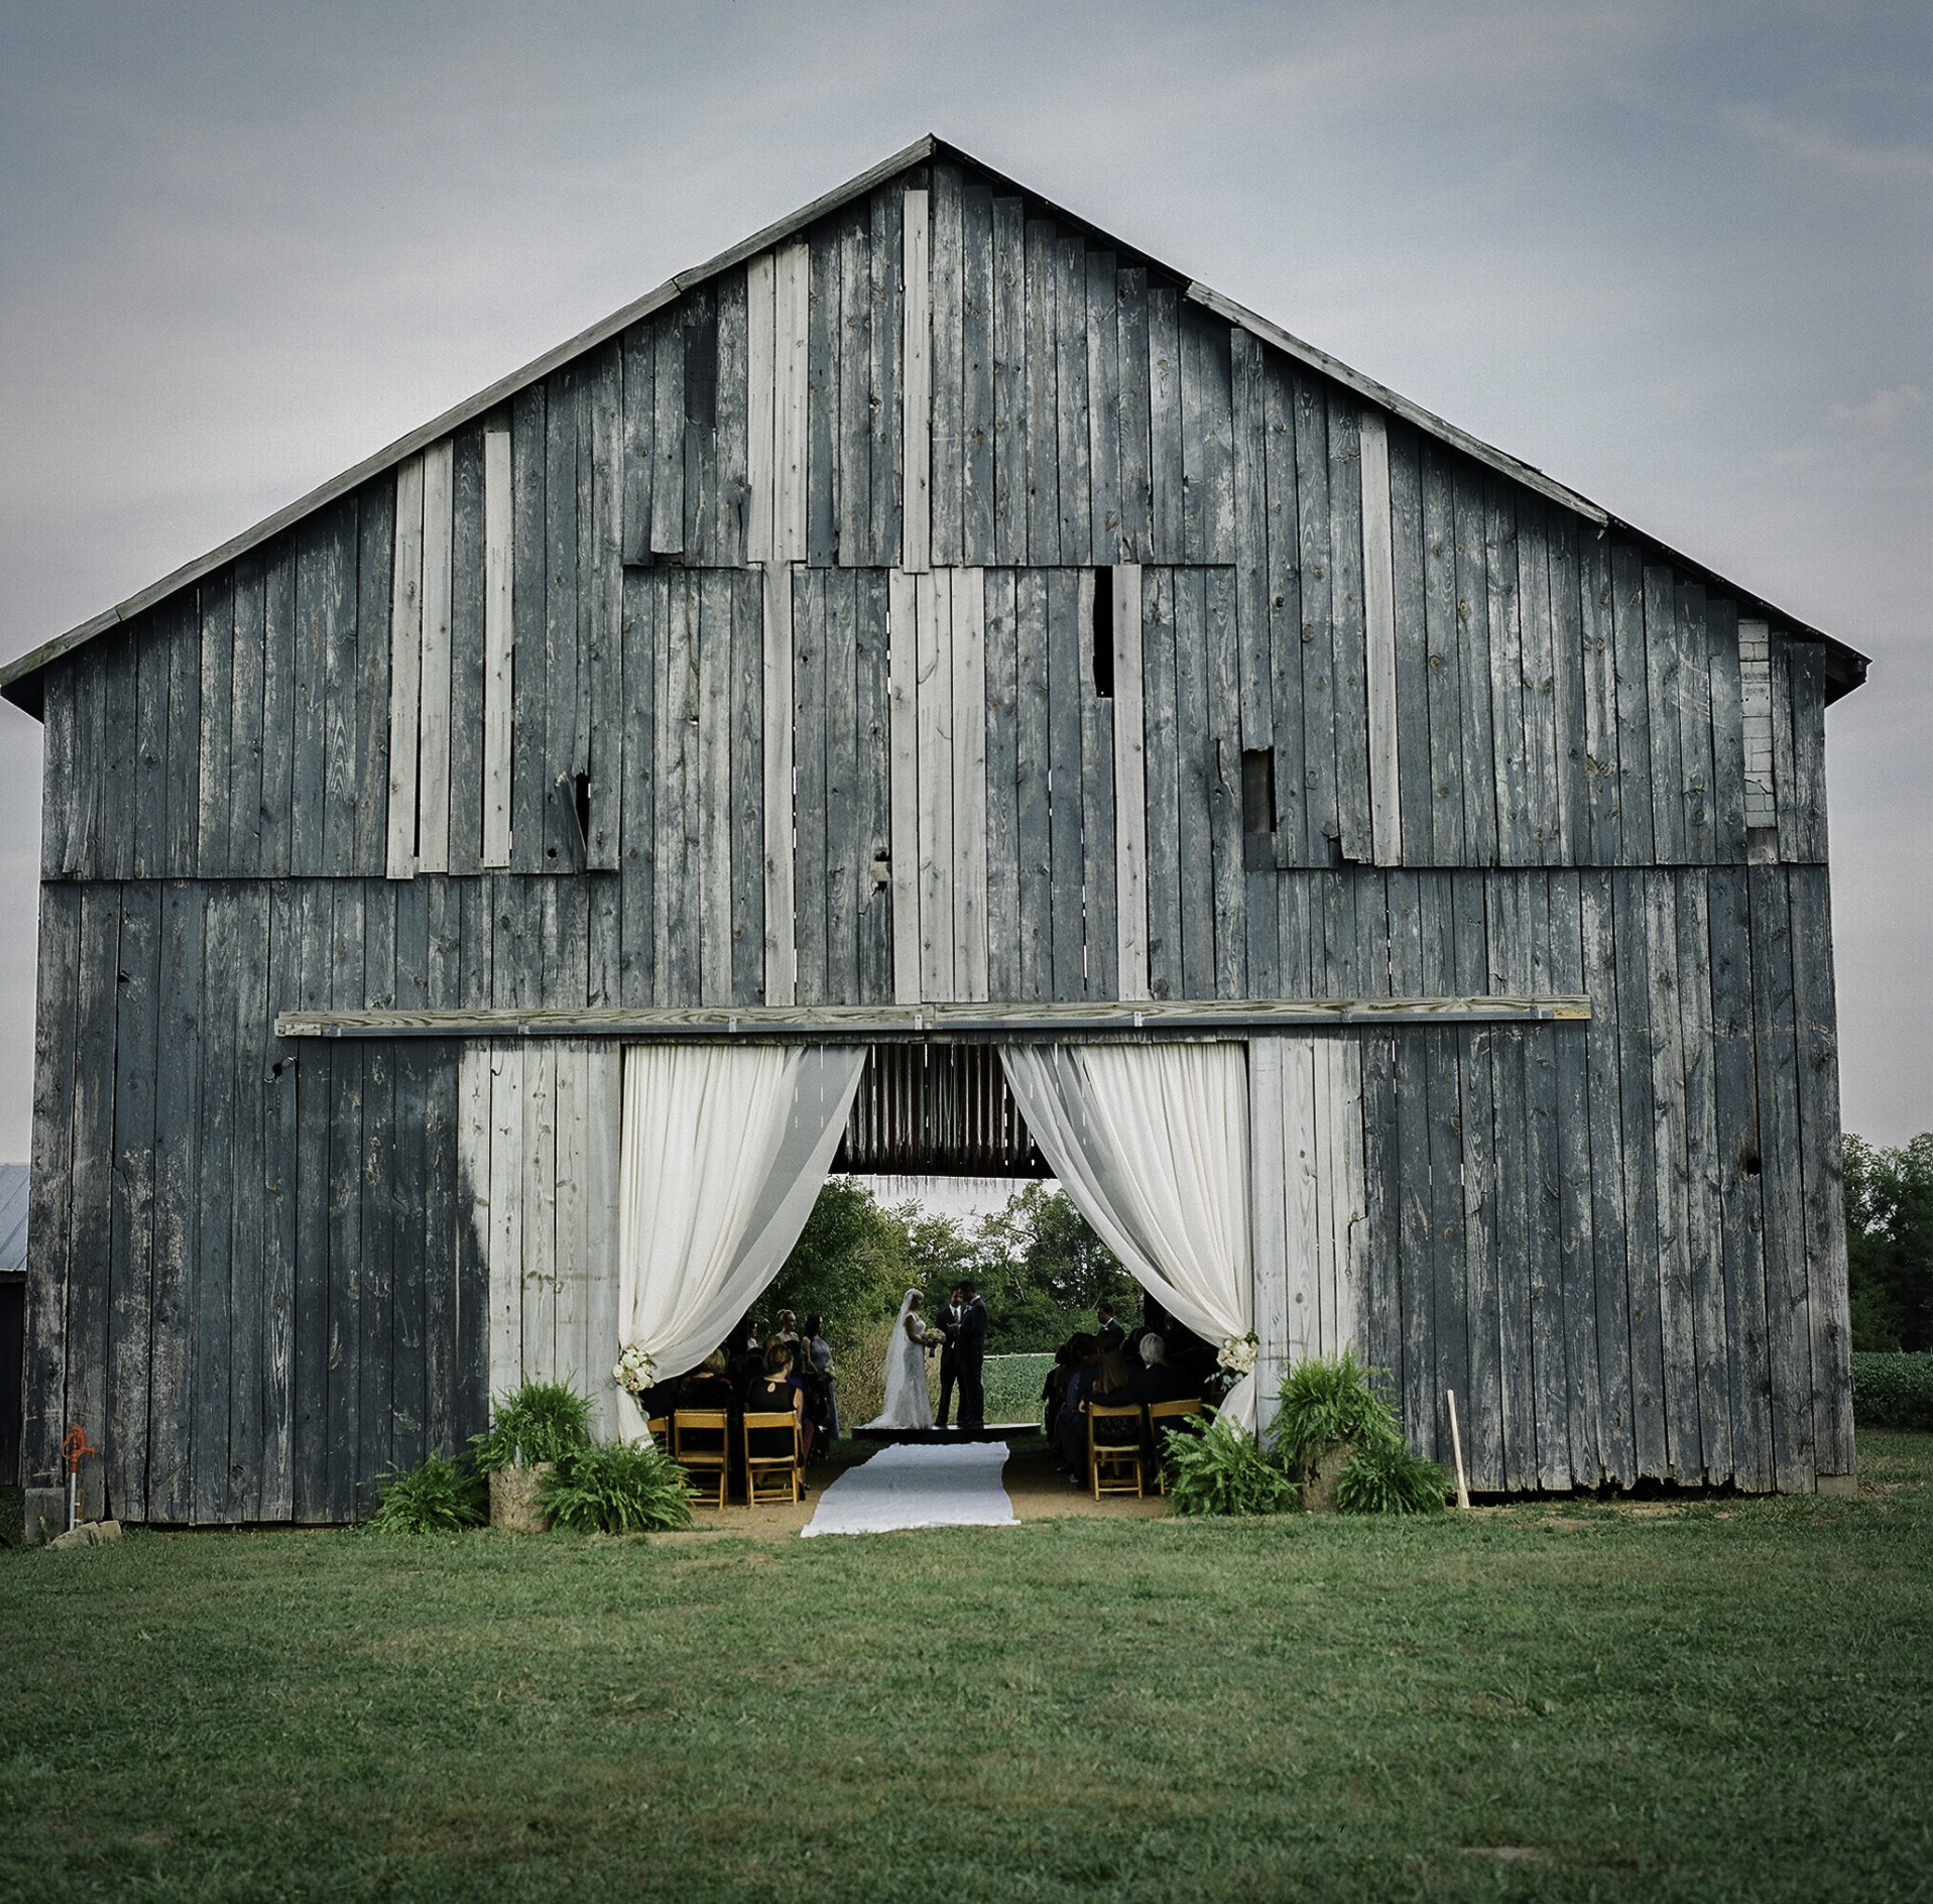 Exterior View of Tobacco Barn